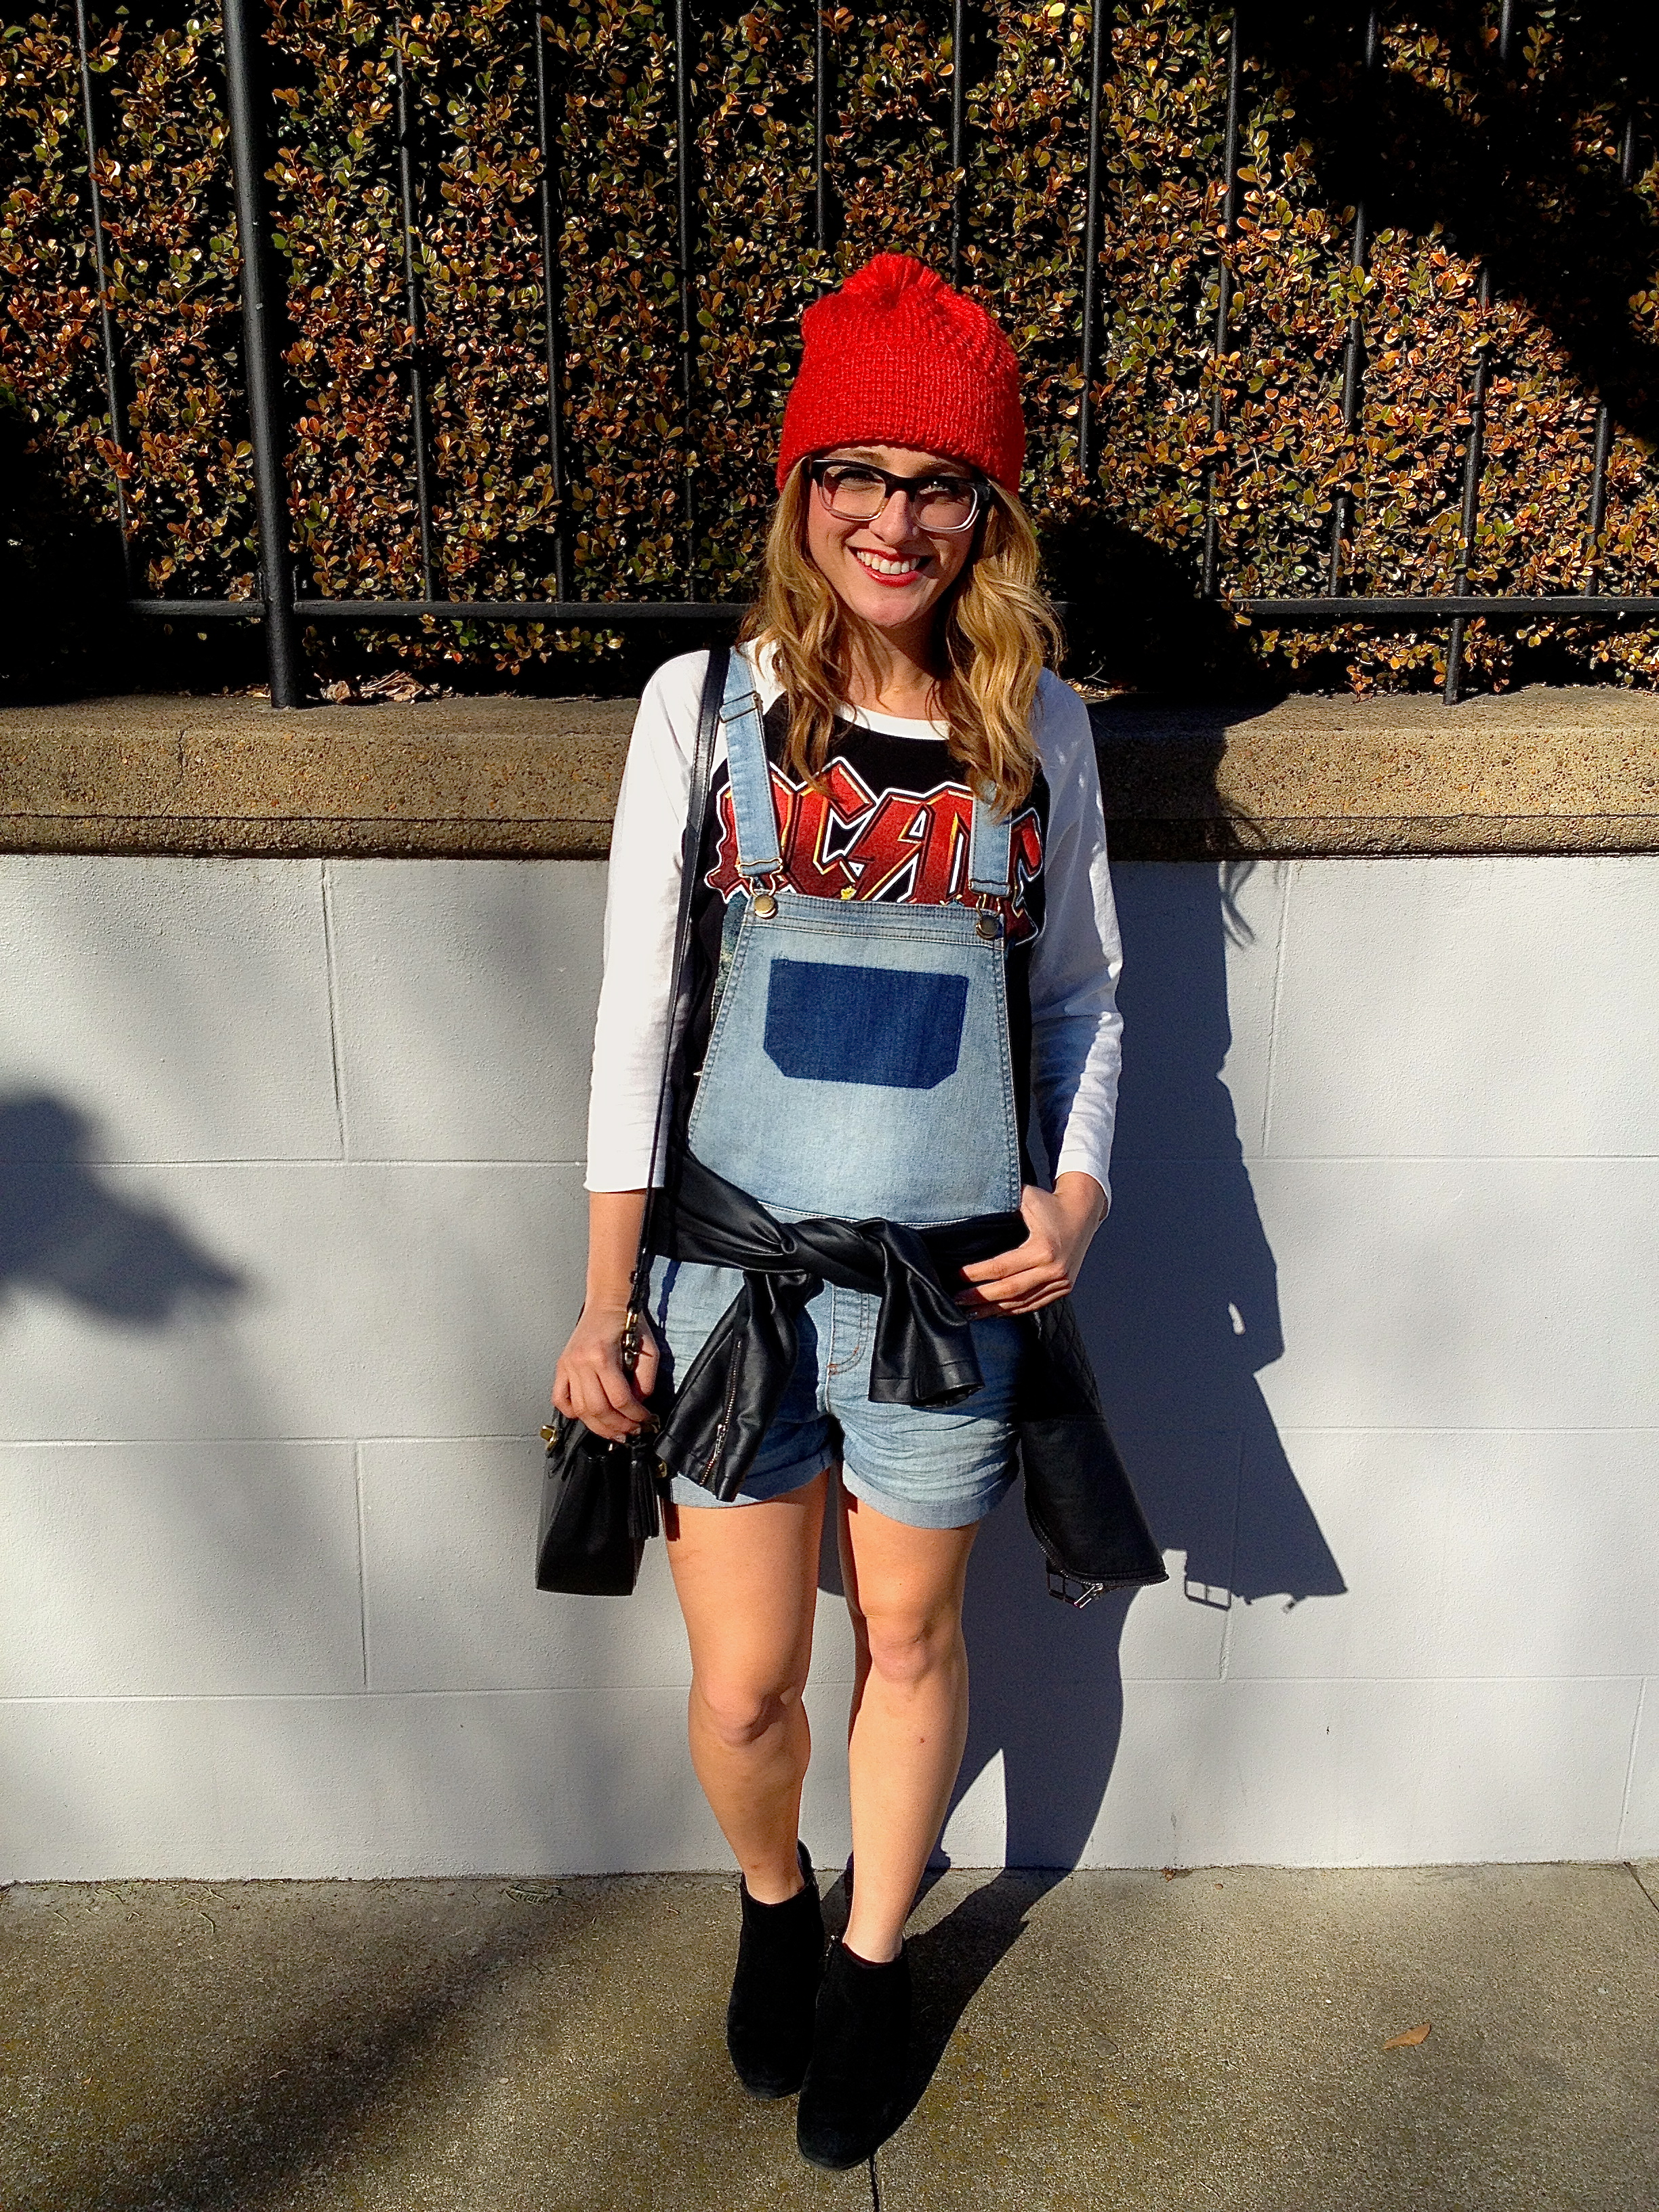 Hat: Gap | Shirt: F21 | Overalls: F21 | Jacket: Bar III | Shoes: Steve Madden |Purse: Coach